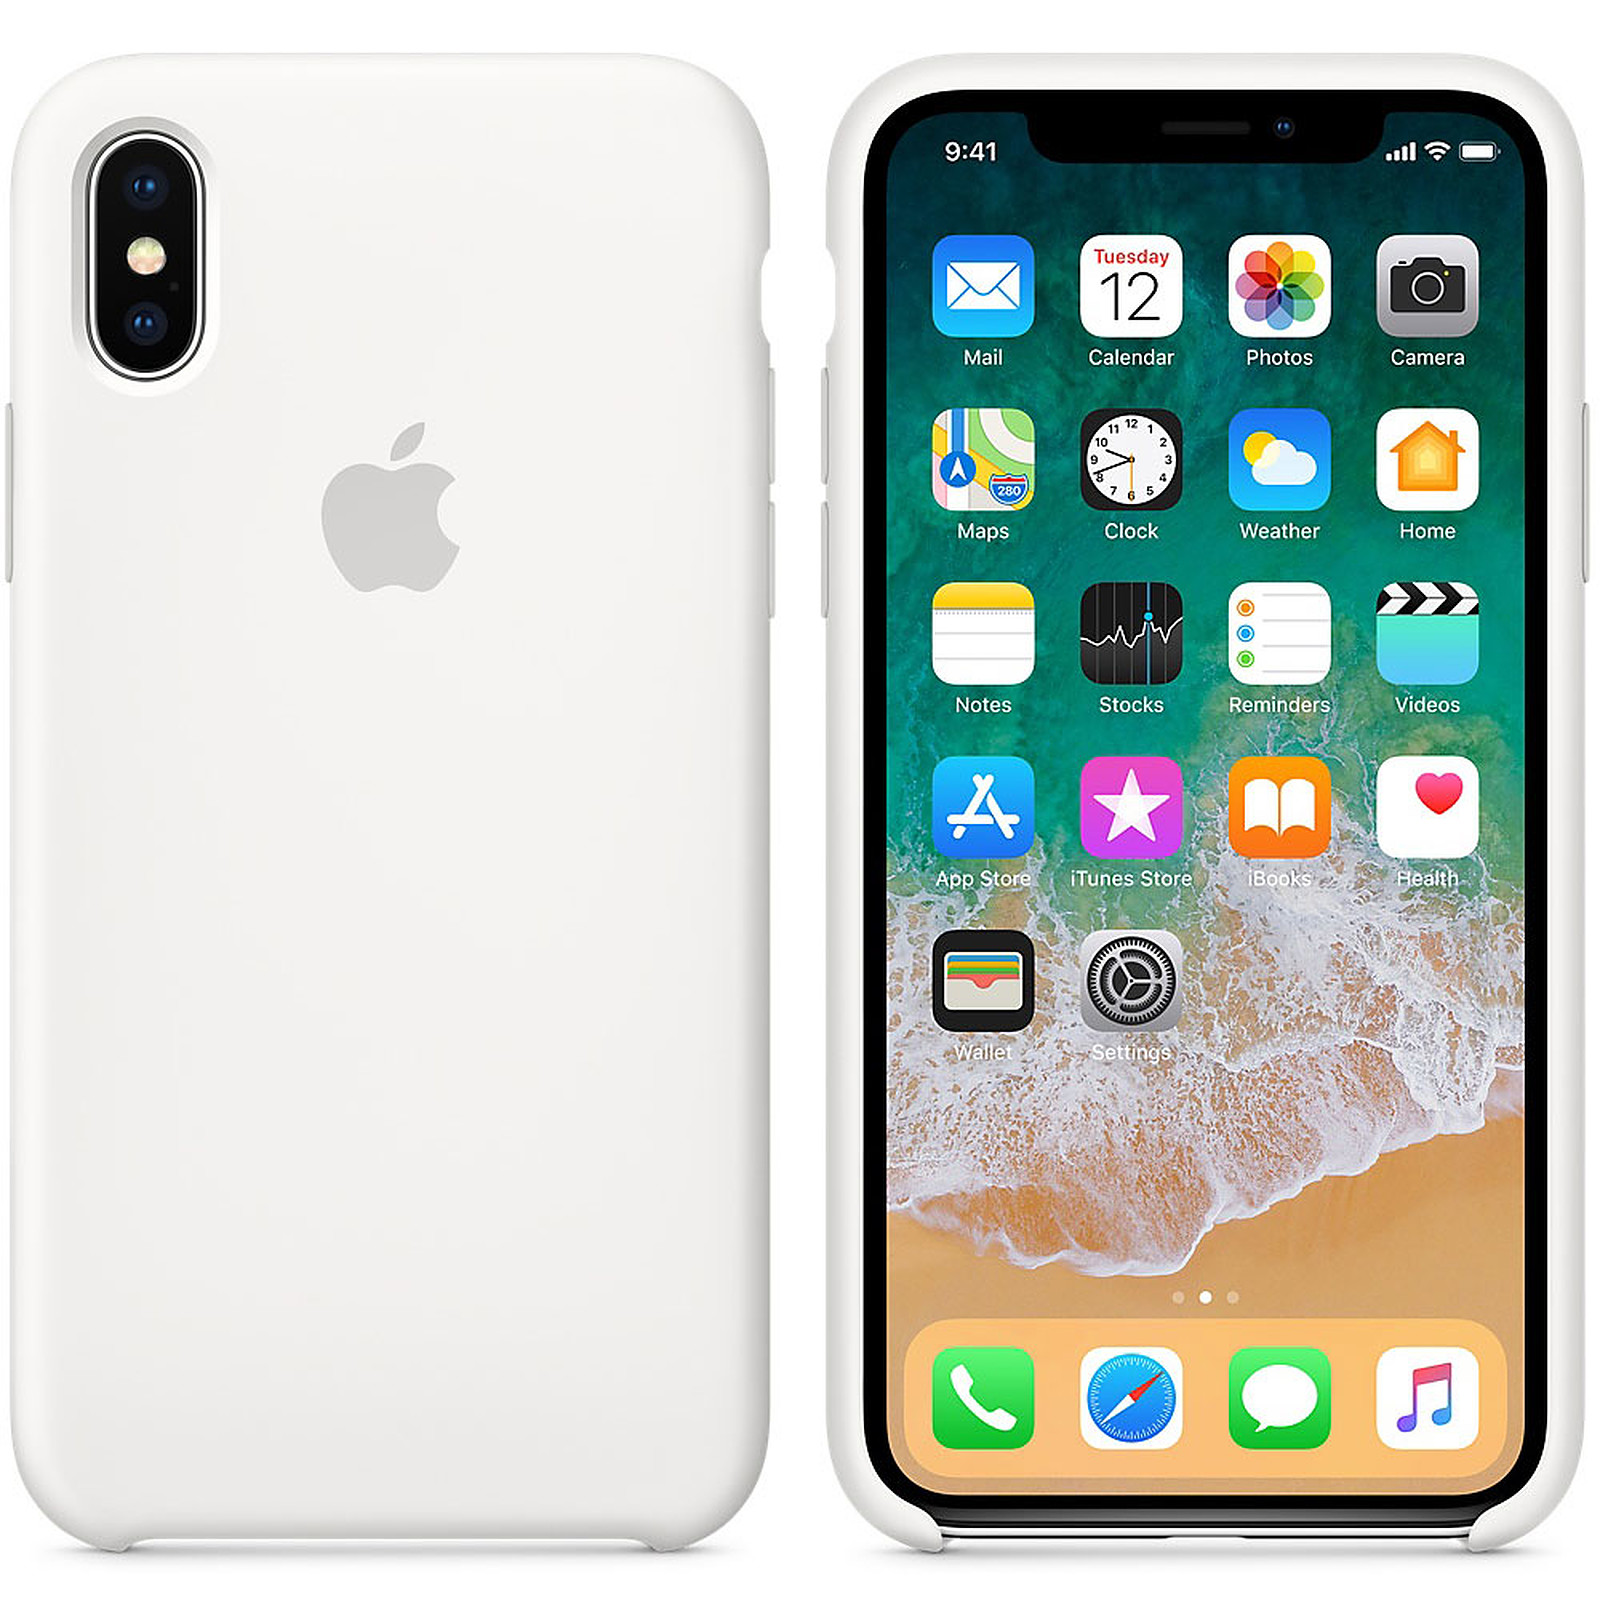 c92f77c69e1 Apple Funda de silicona blanca Apple iPhone X - Funda de teléfono ...